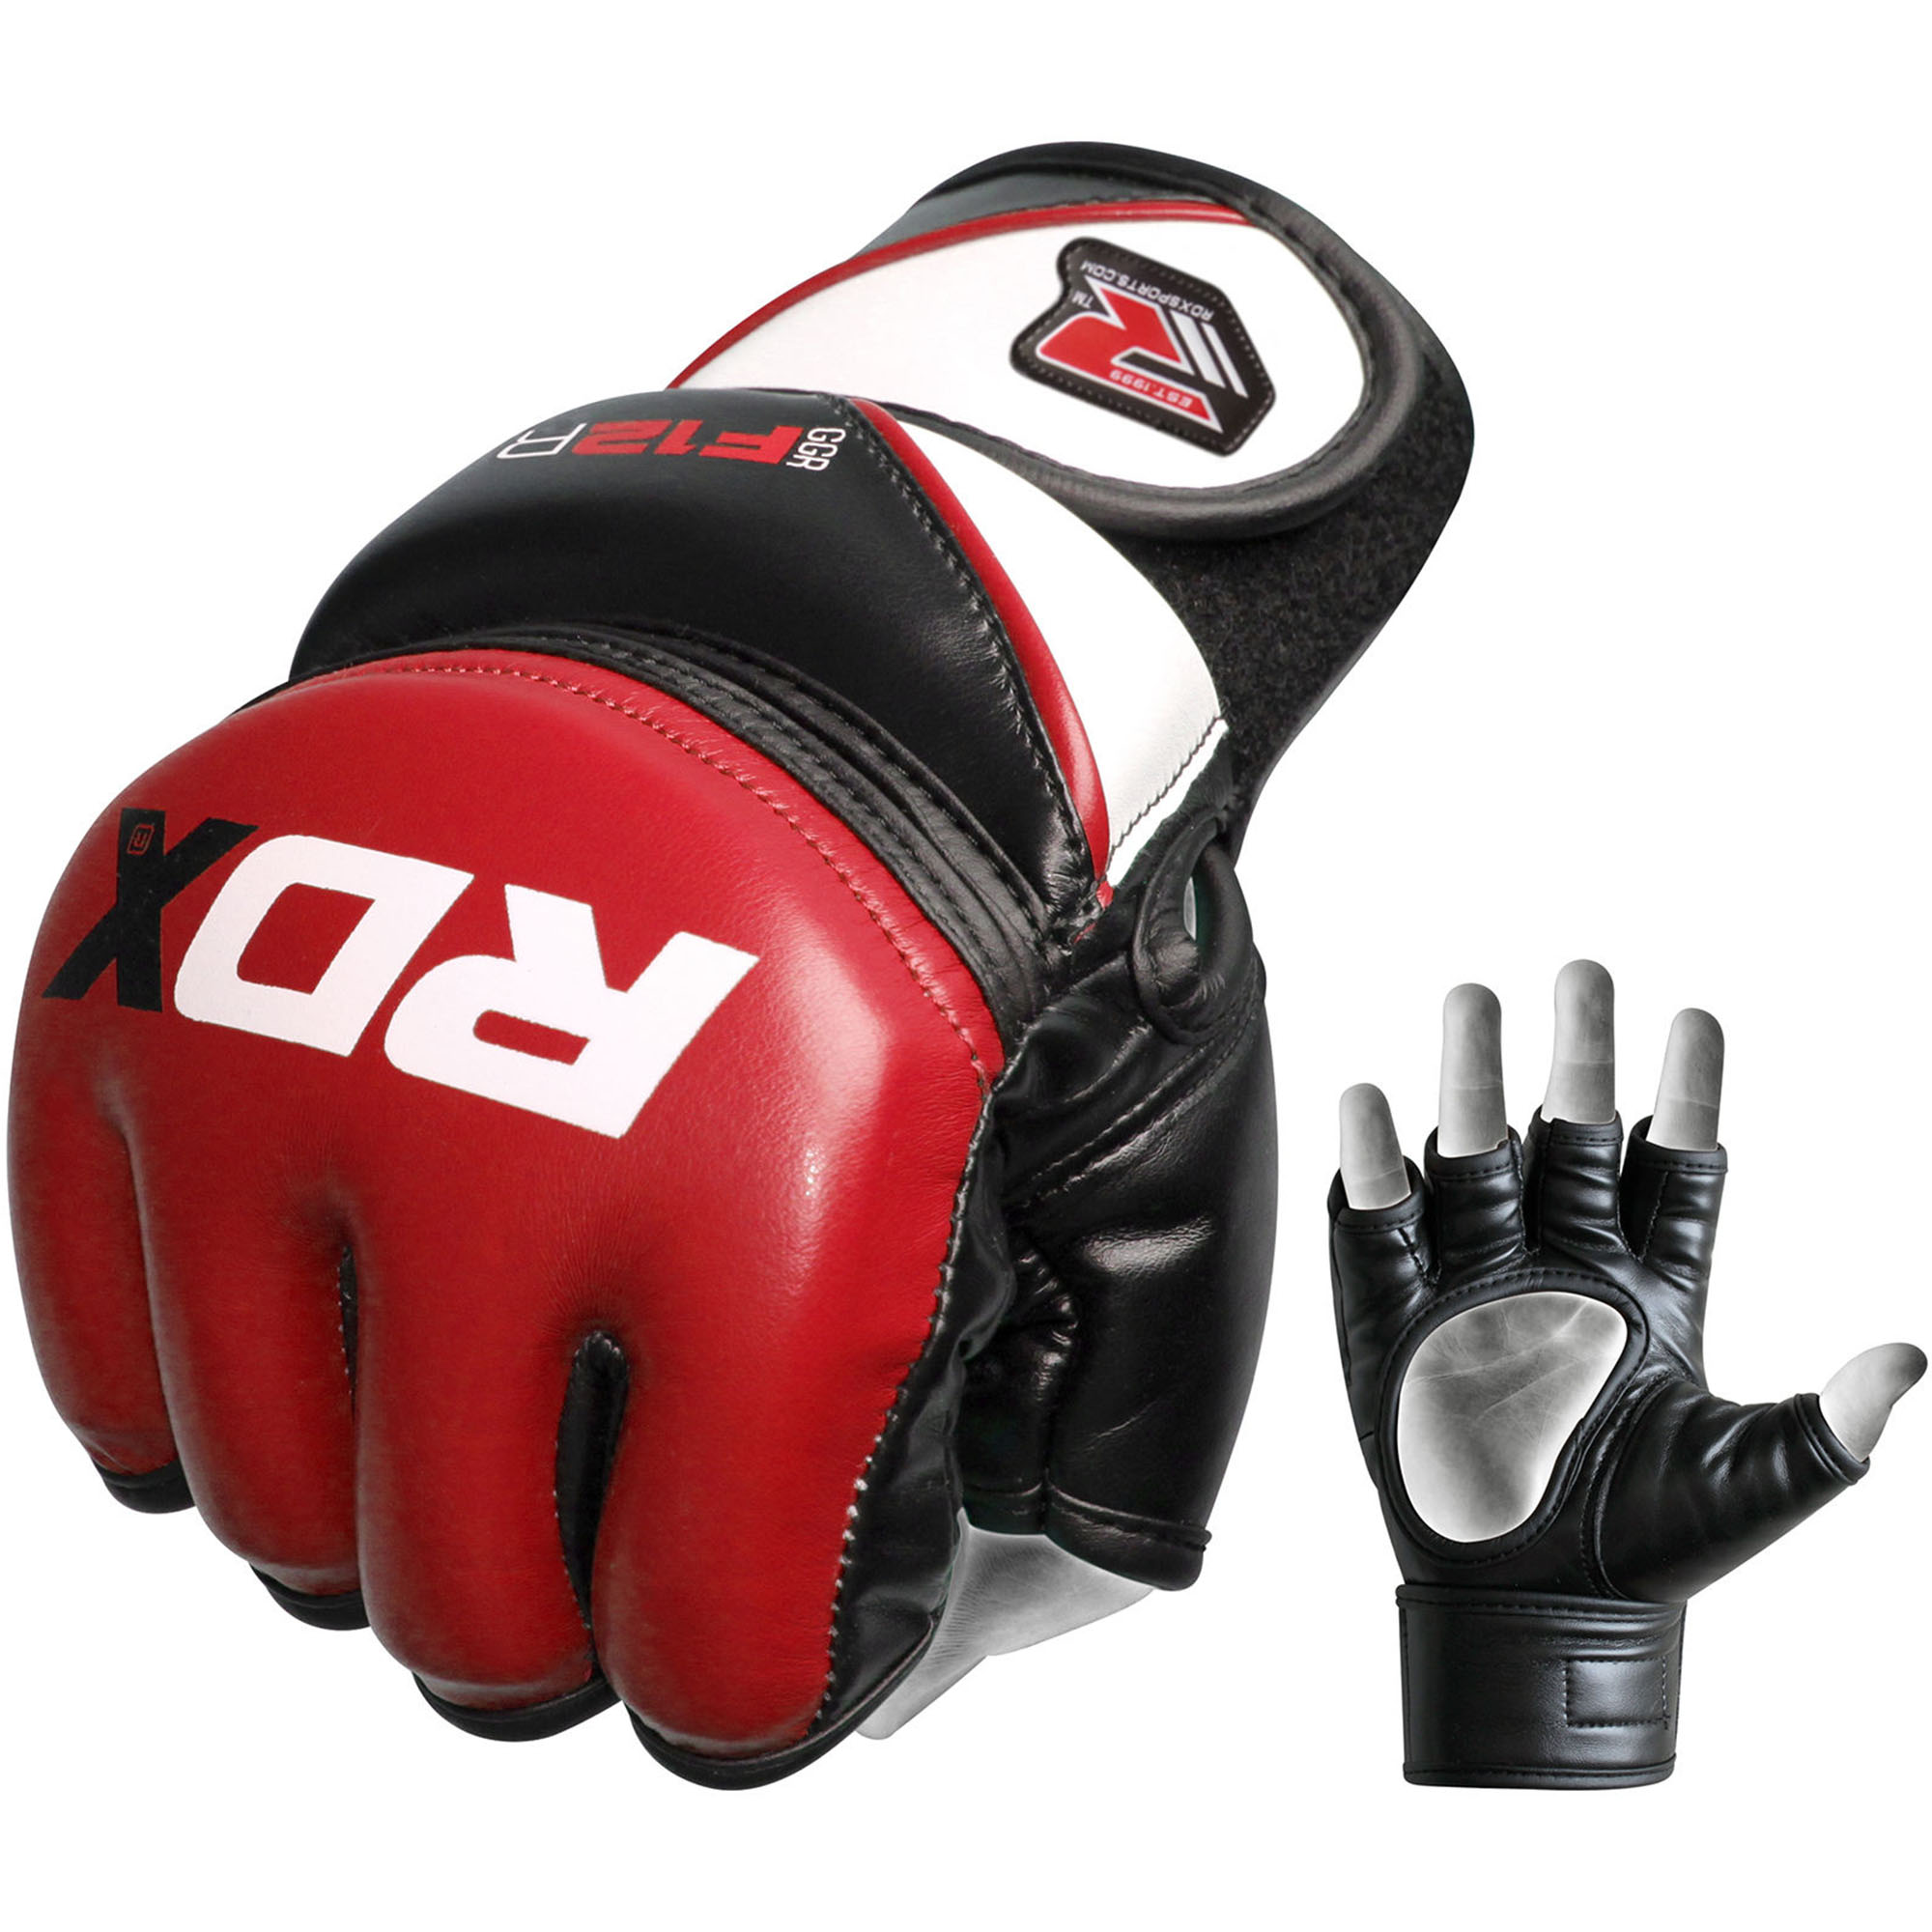 RDX Martial Arts Gloves MMA Grappling Sparring UFC Training Cage Fighting Combat Maya Hide Leather Punching Bag Mitts by De Caprio